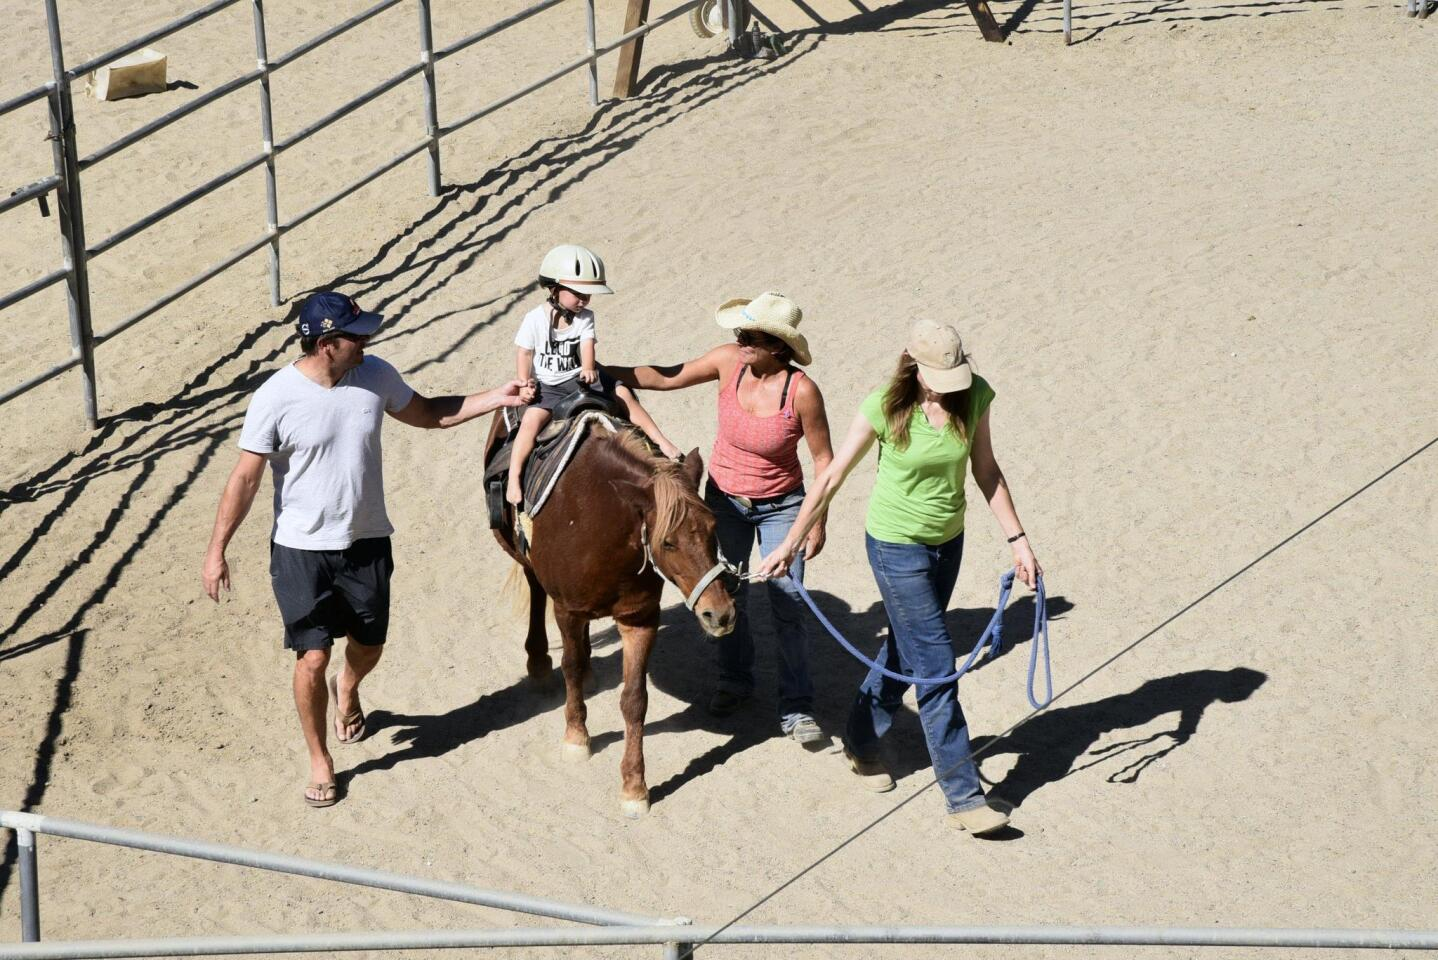 The very popular pony rides give many kids their first exposure to horses